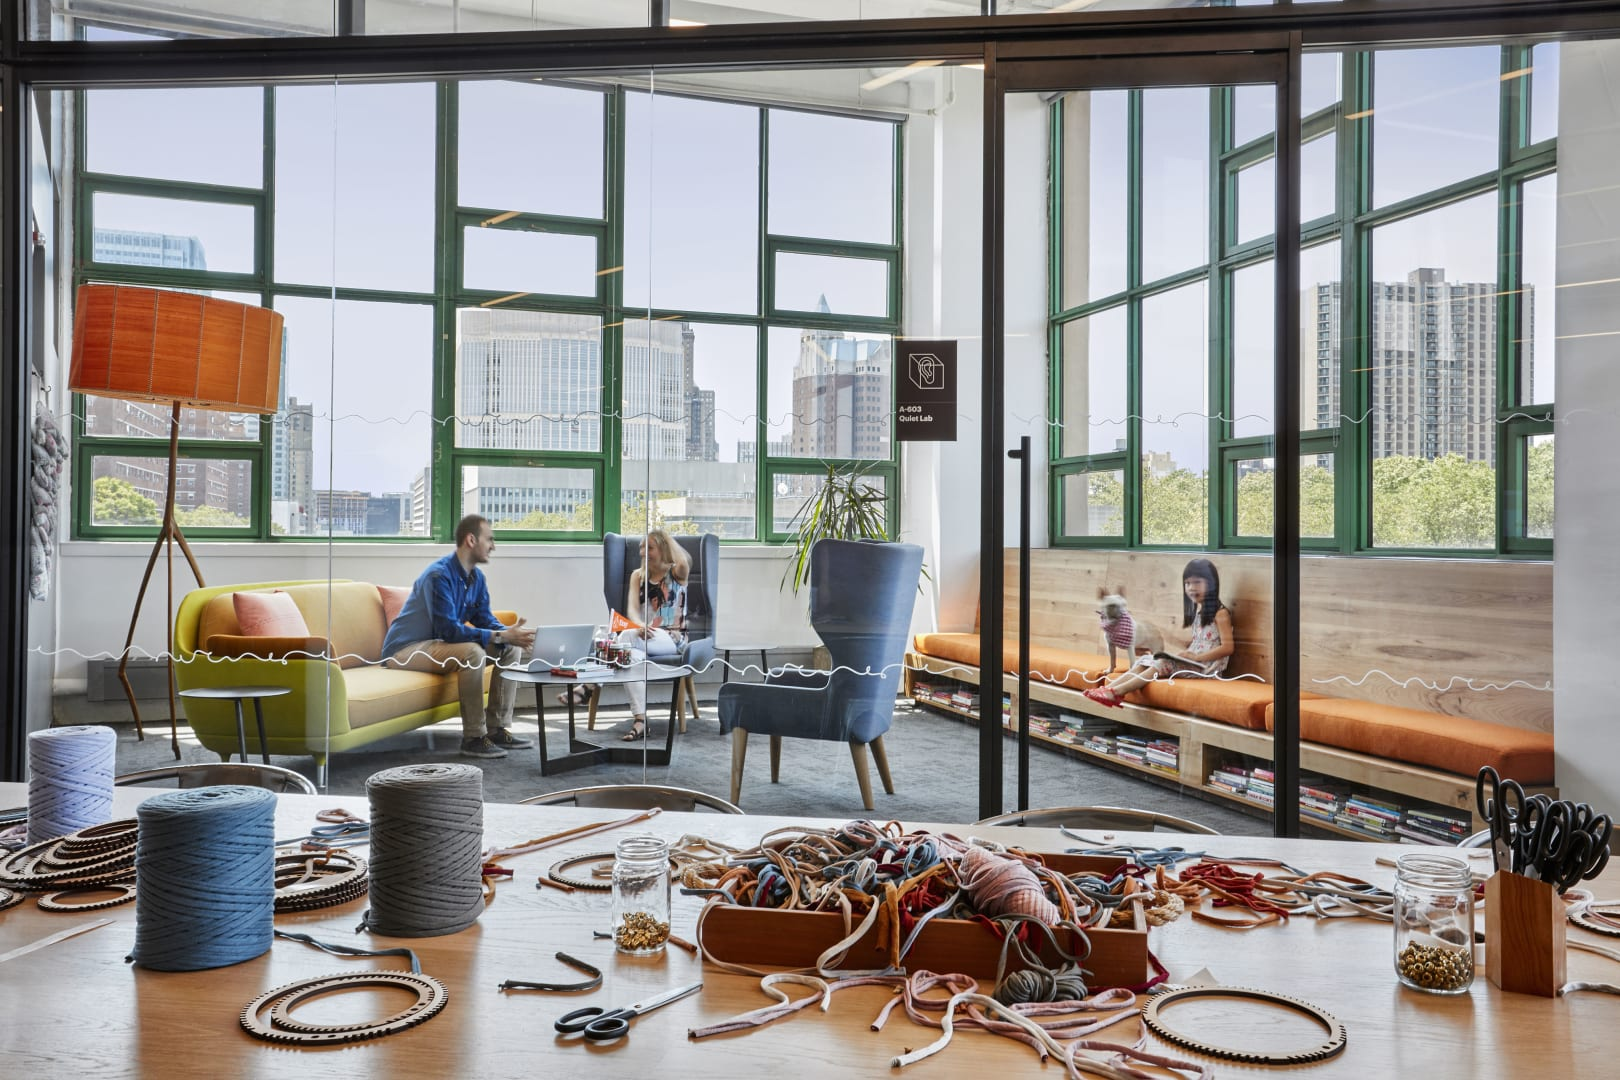 2020 COTE Top Ten award recipient, Etsy Headquarters, provides an area for employees and local artisans to create.